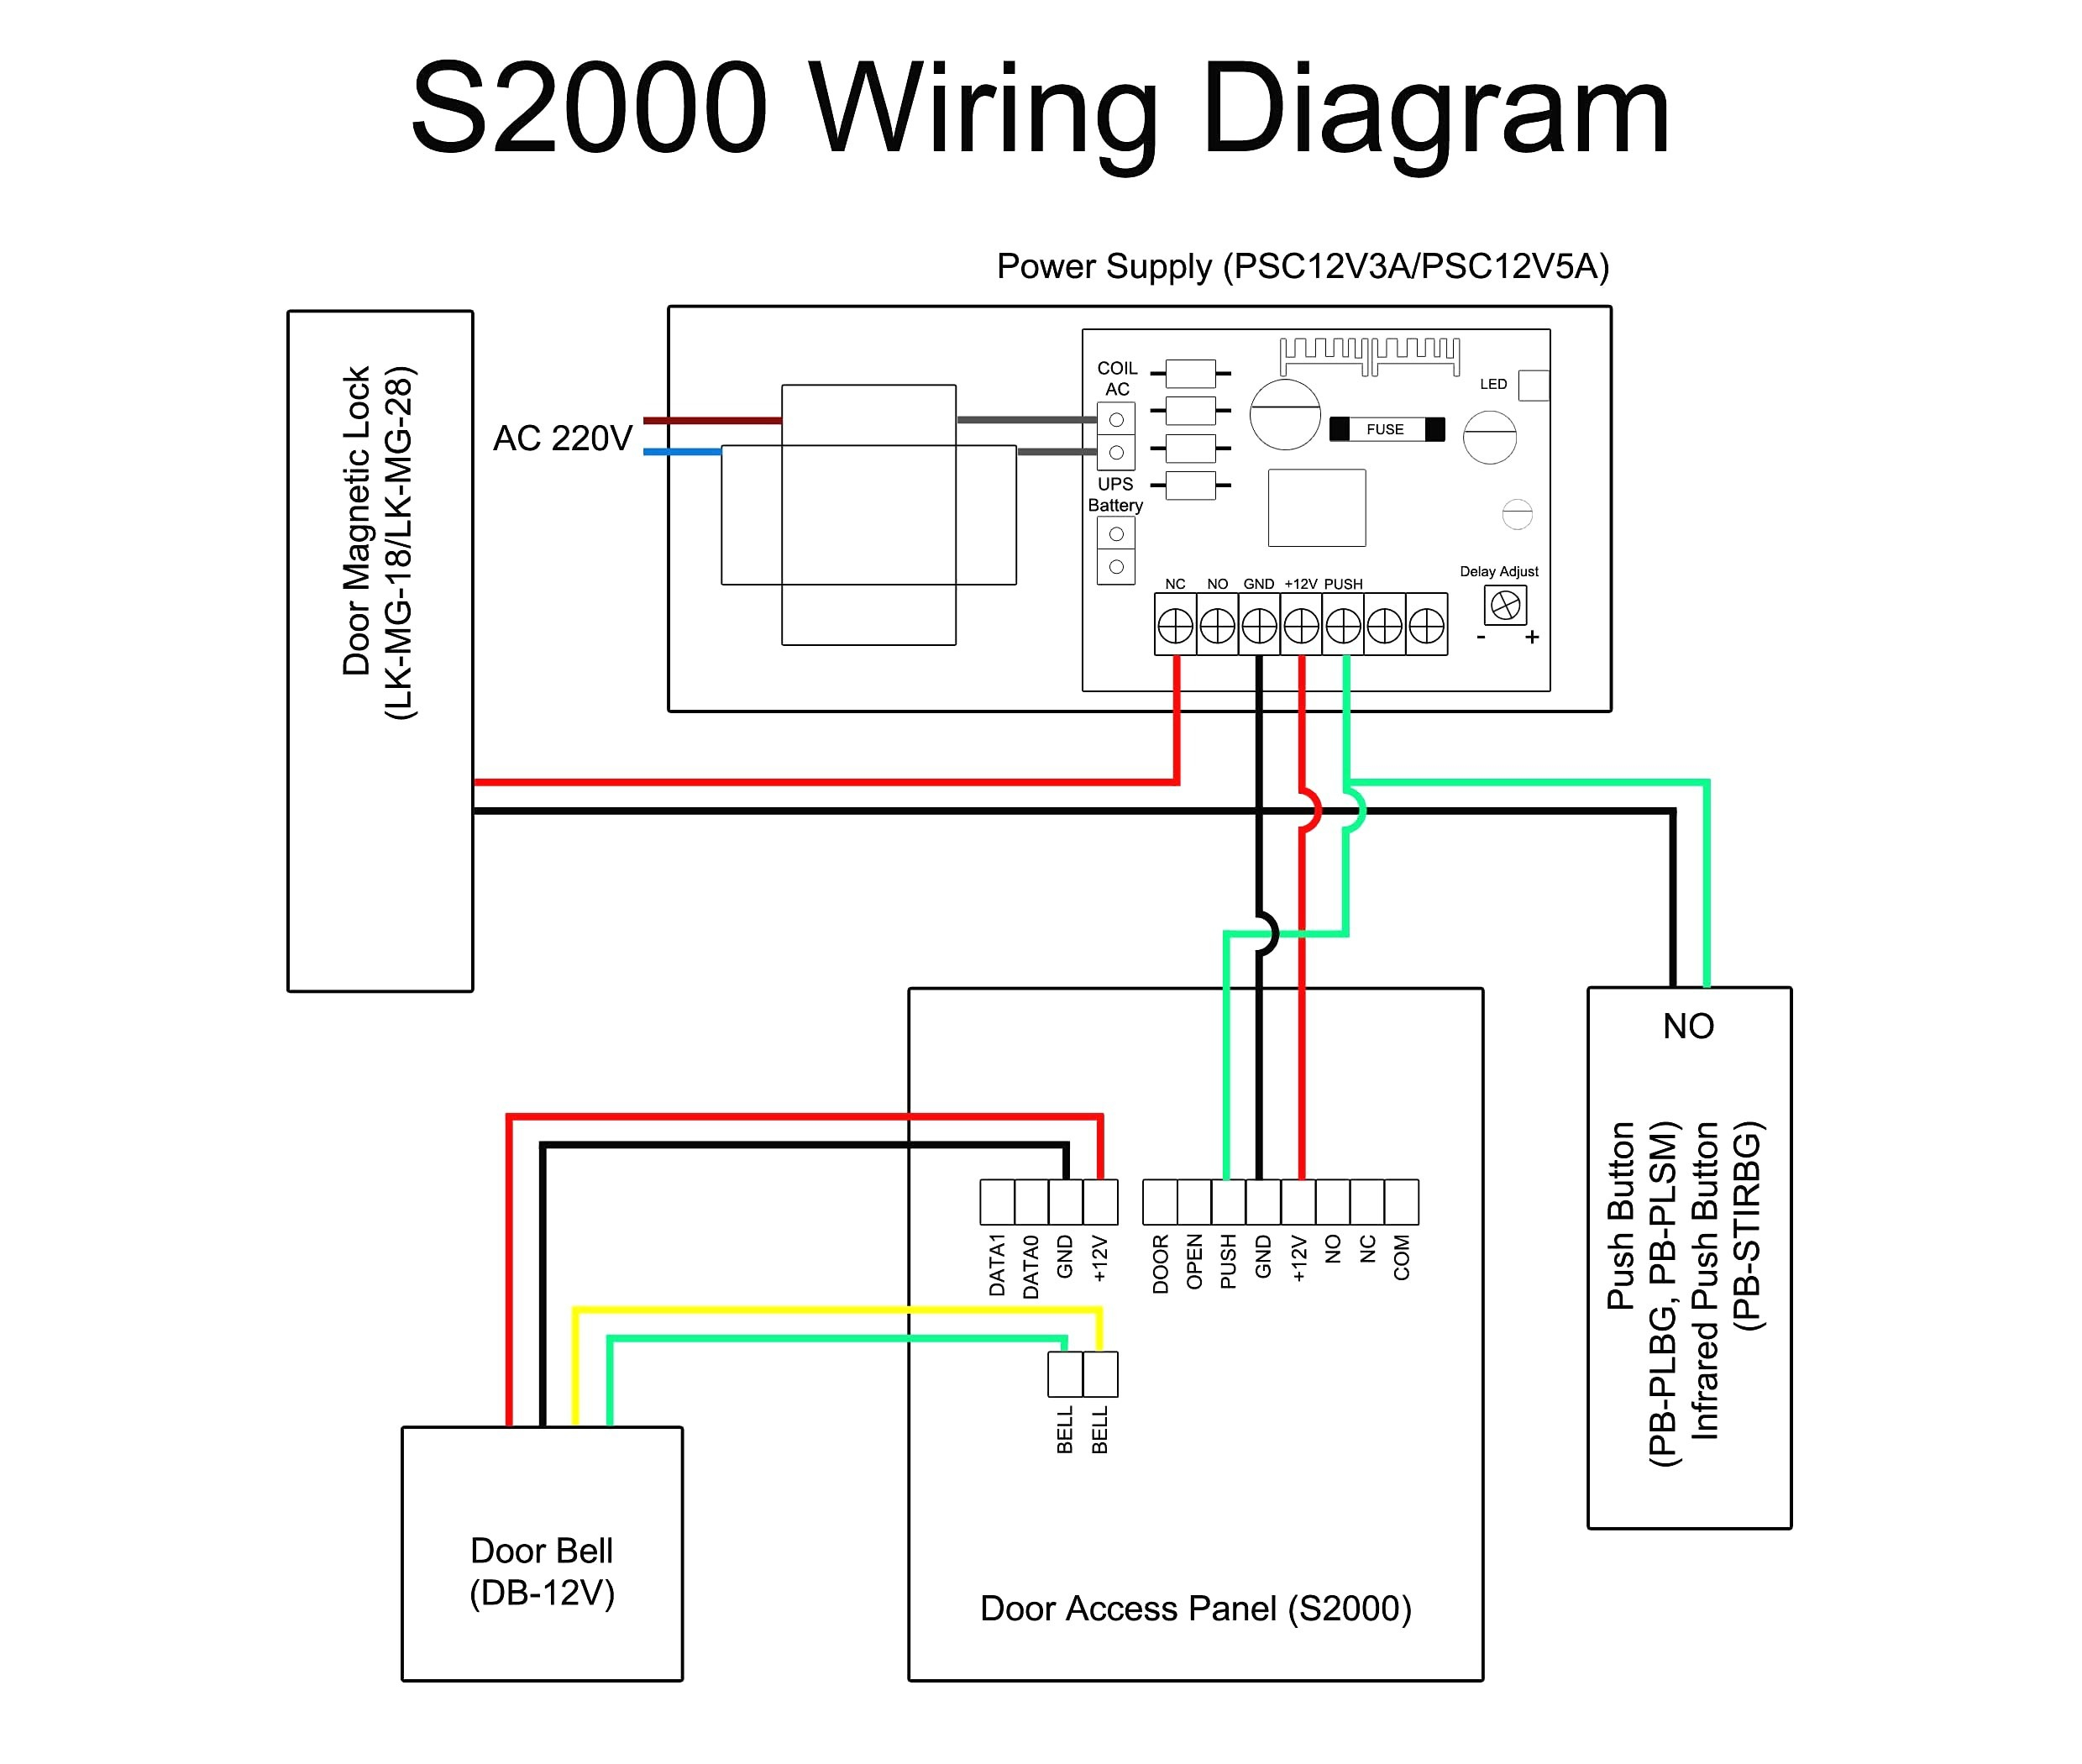 cmos camera wiring diagram Collection-Bunker Hill Security Camera Wiring Diagram New Ccd Camera Circuit Diagram Beautiful Cmos Camera Wiring Diagram 14-n